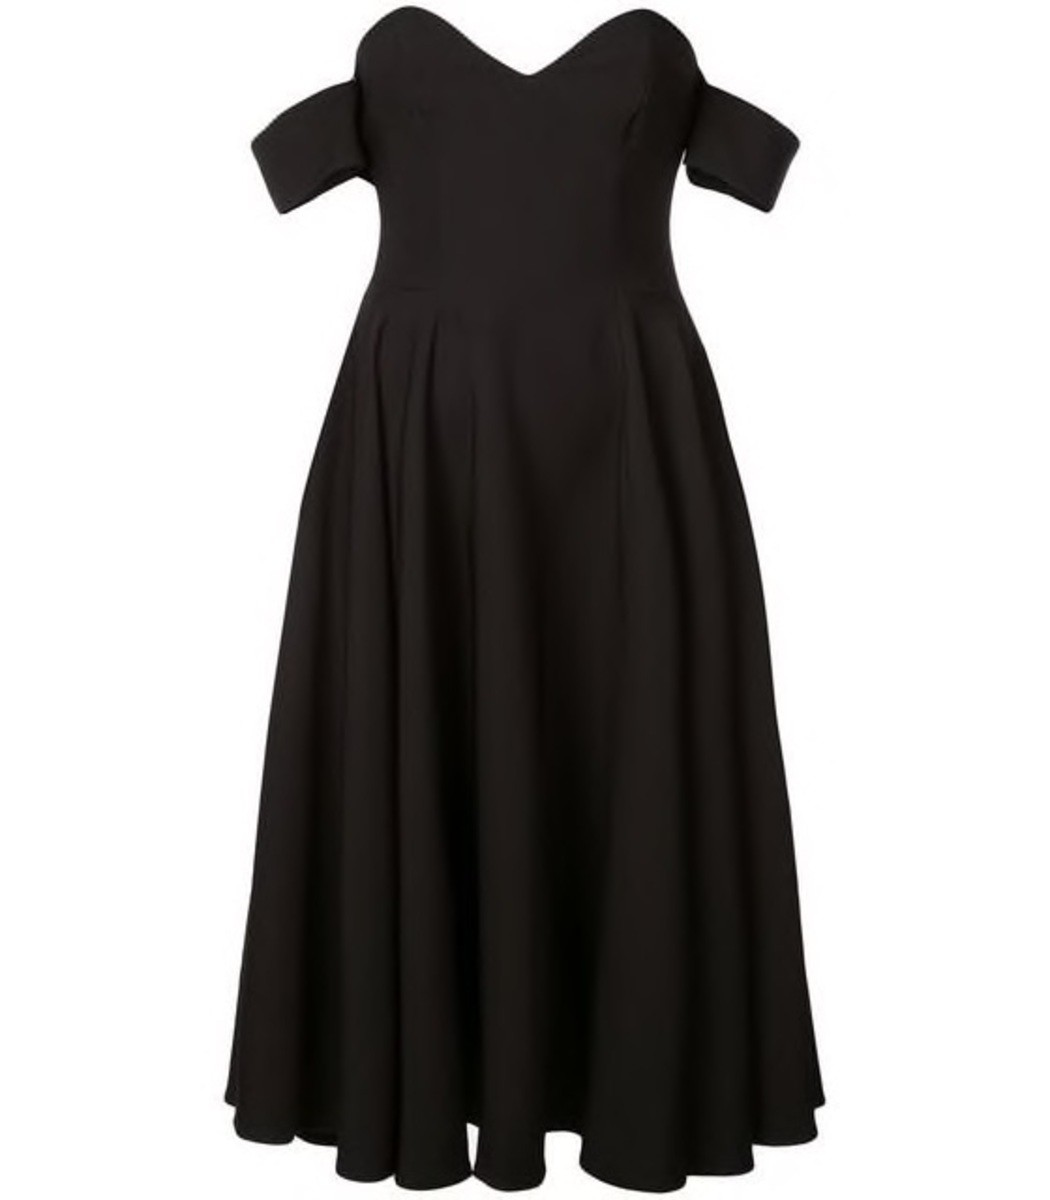 Sara Battaglia Black Bardot Dress